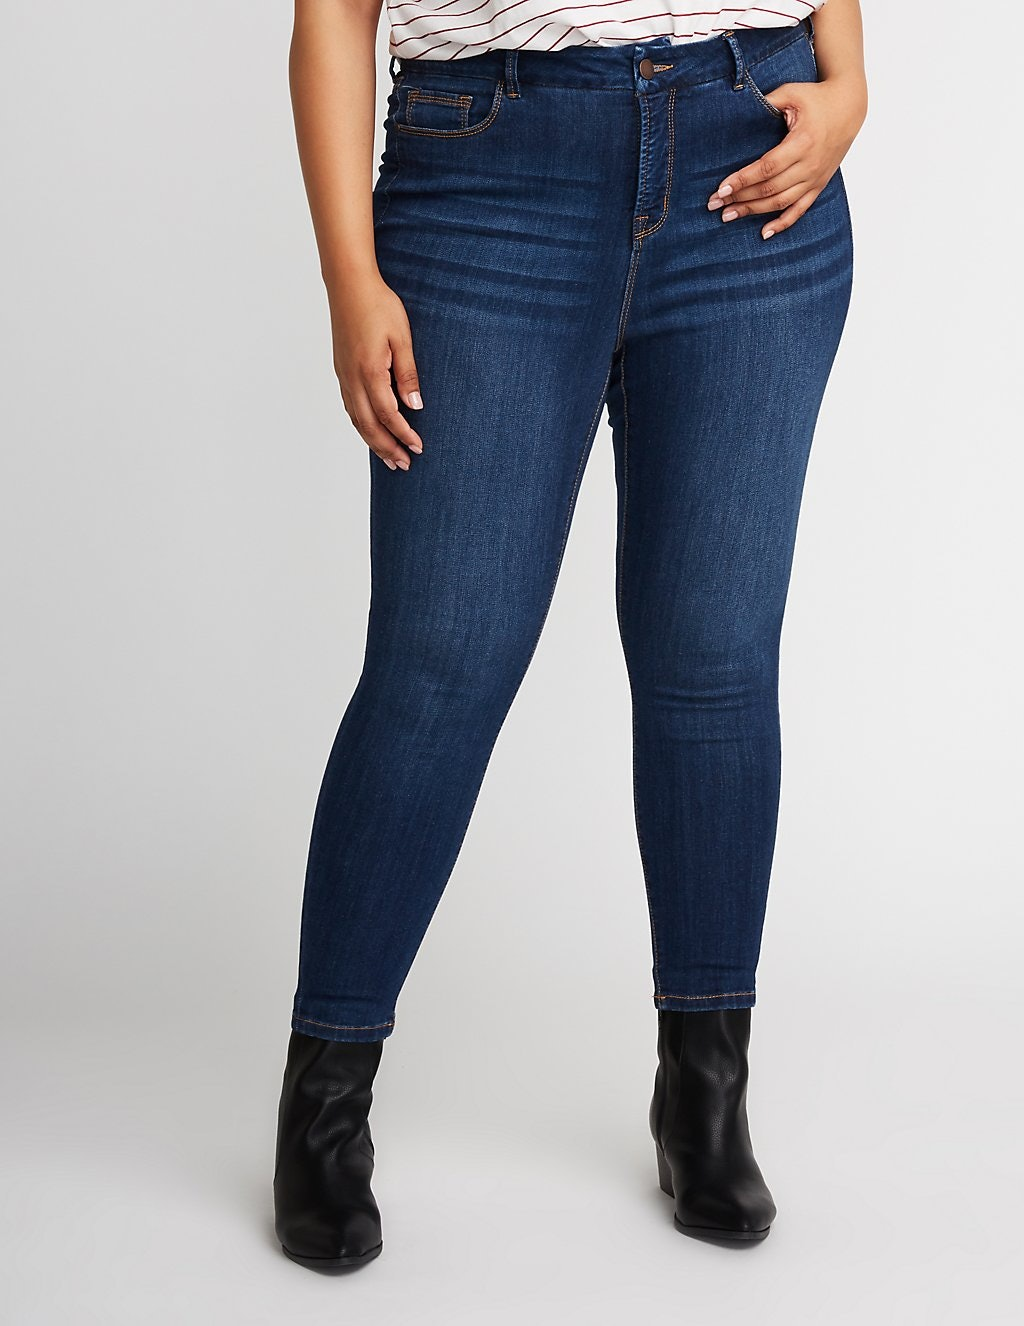 84f2e713c89 The Best Plus-Size Jeans According To 8 Fashion Influencers